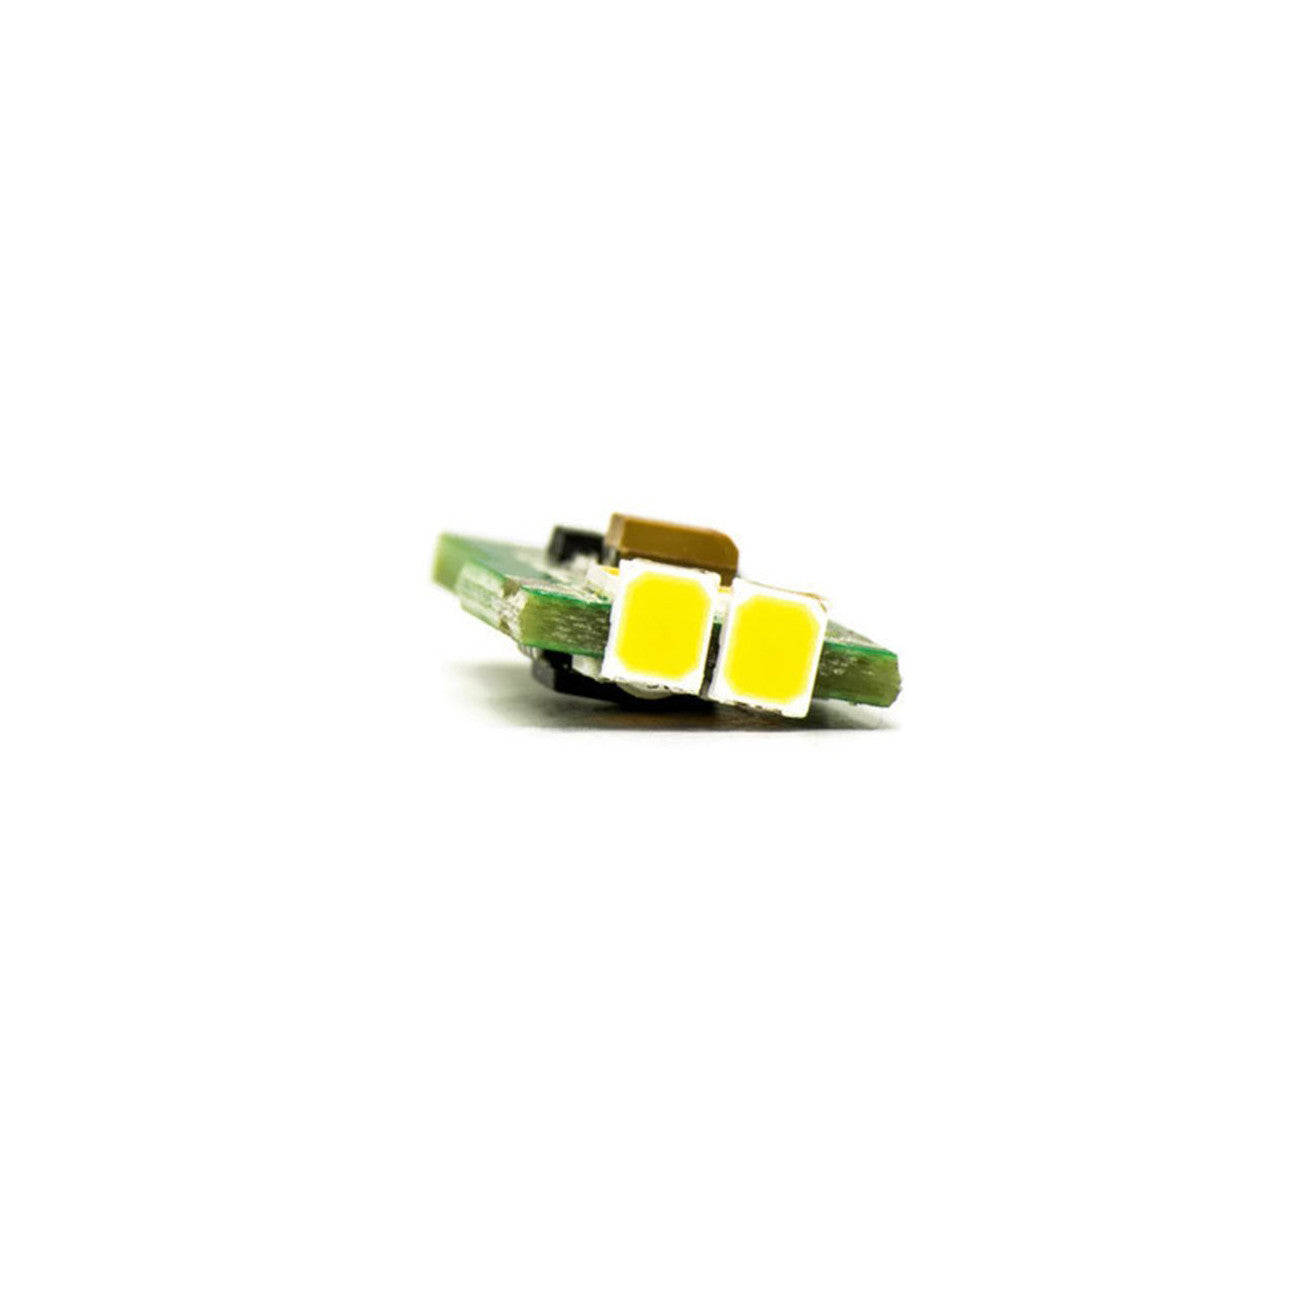 Brightech Store   Package of 10 LED Replacements for Malibu ...